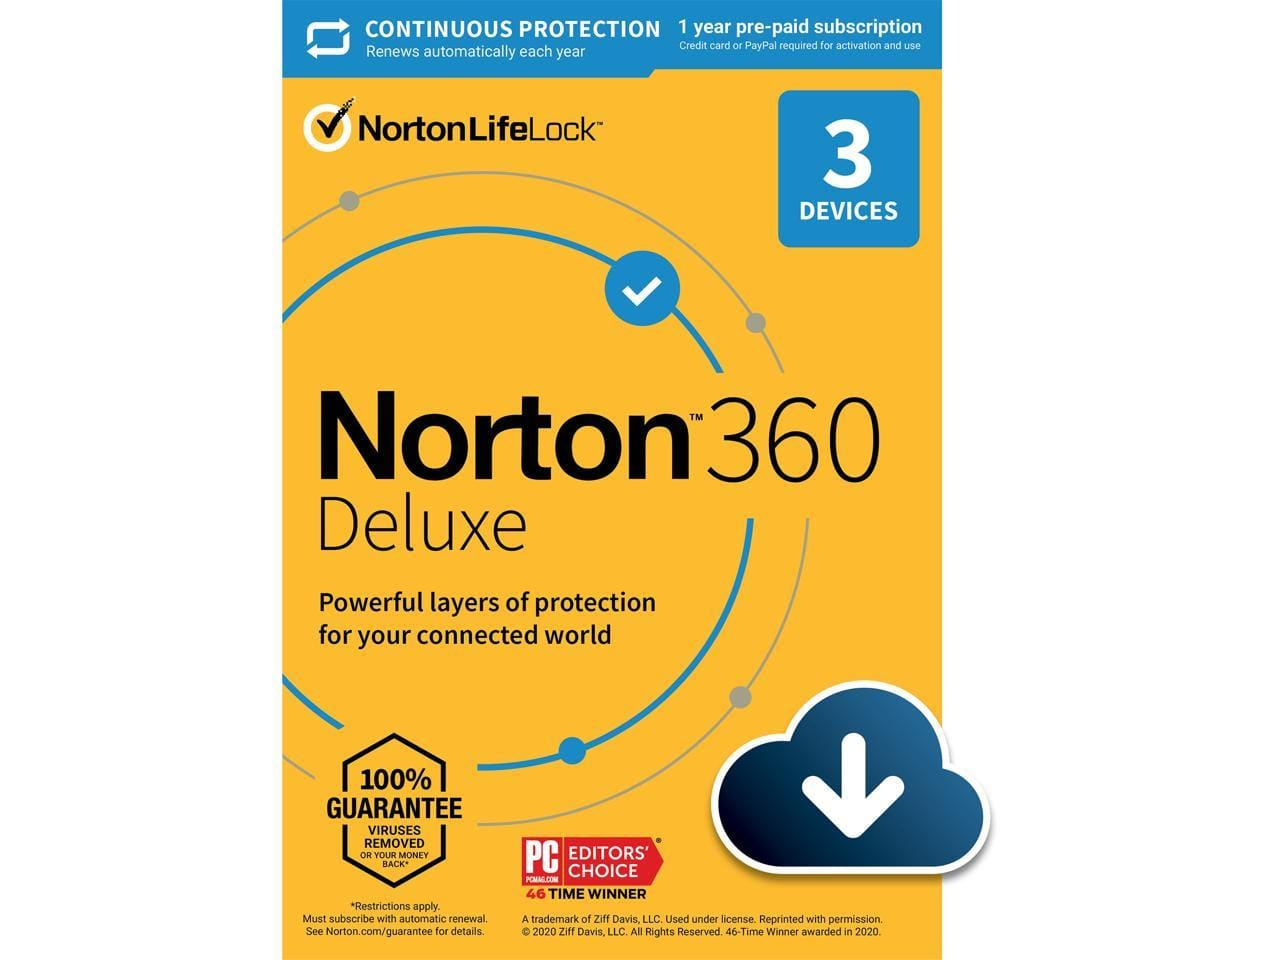 Norton 360 Deluxe 2021 - Antivirus software for 3 Devices with Auto Renewal - Includes VPN, PC Cloud Backup & Dark Web Monitoring (DL) @Newegg $13